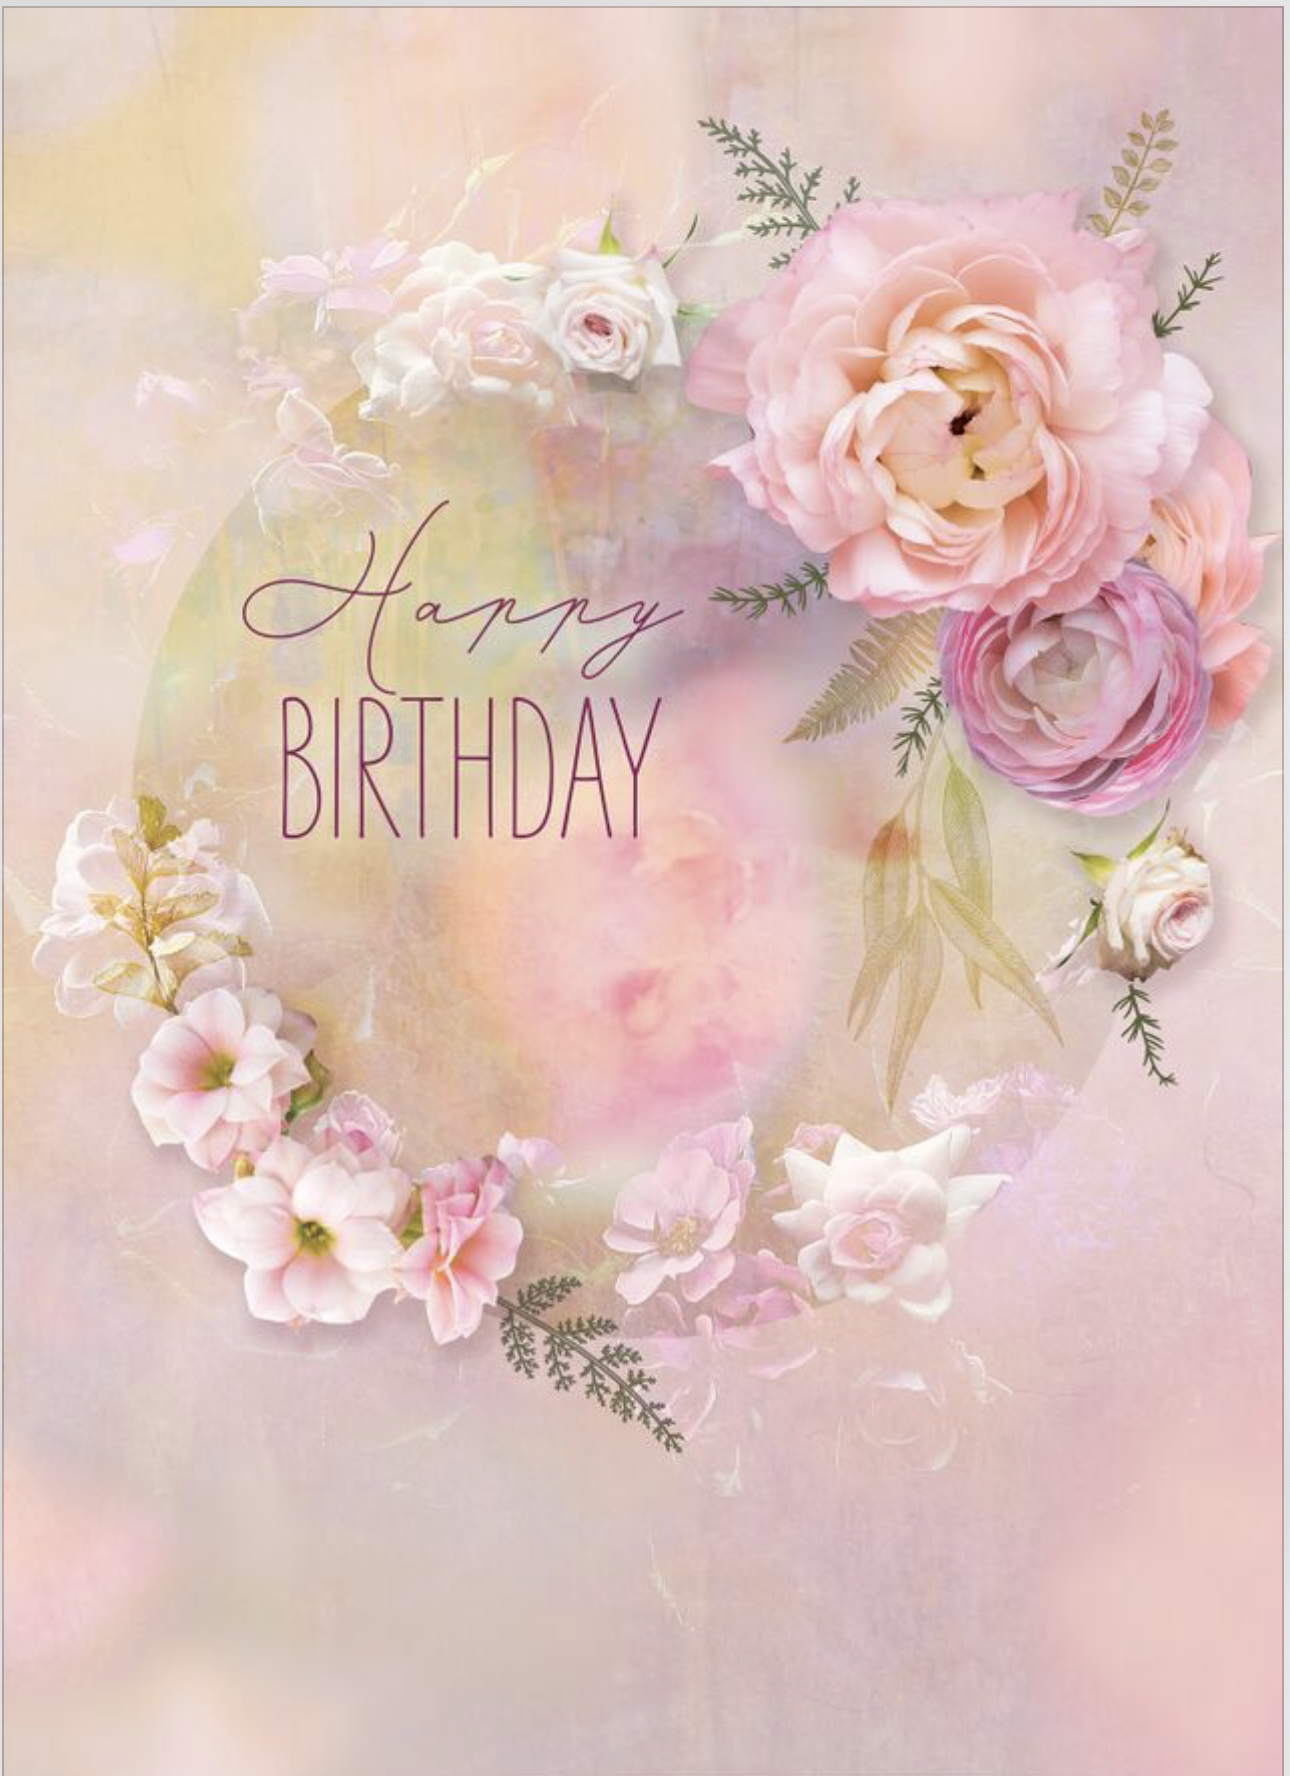 Pretty In Pink Send Birthday Wishes With This Soft And Floral Birthday Card From Lar Birthday Wishes Flowers Happy Birthday Wishes Cards Happy Birthday Flower